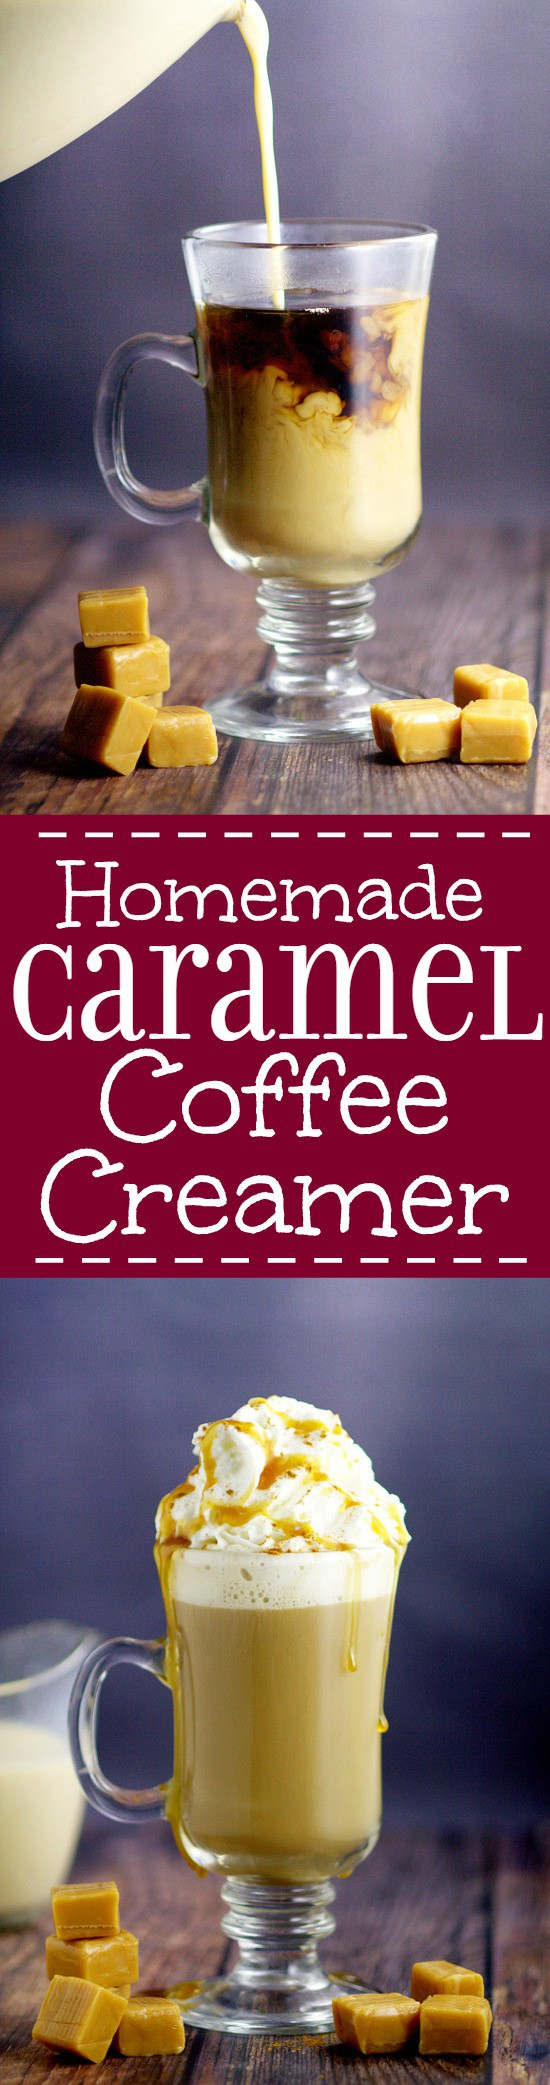 Smooth, creamy, and sweet Homemade Caramel Coffee Creamer recipe in your hot morning coffee is the perfect way to start the day! Oh my! This is seriously amazing!